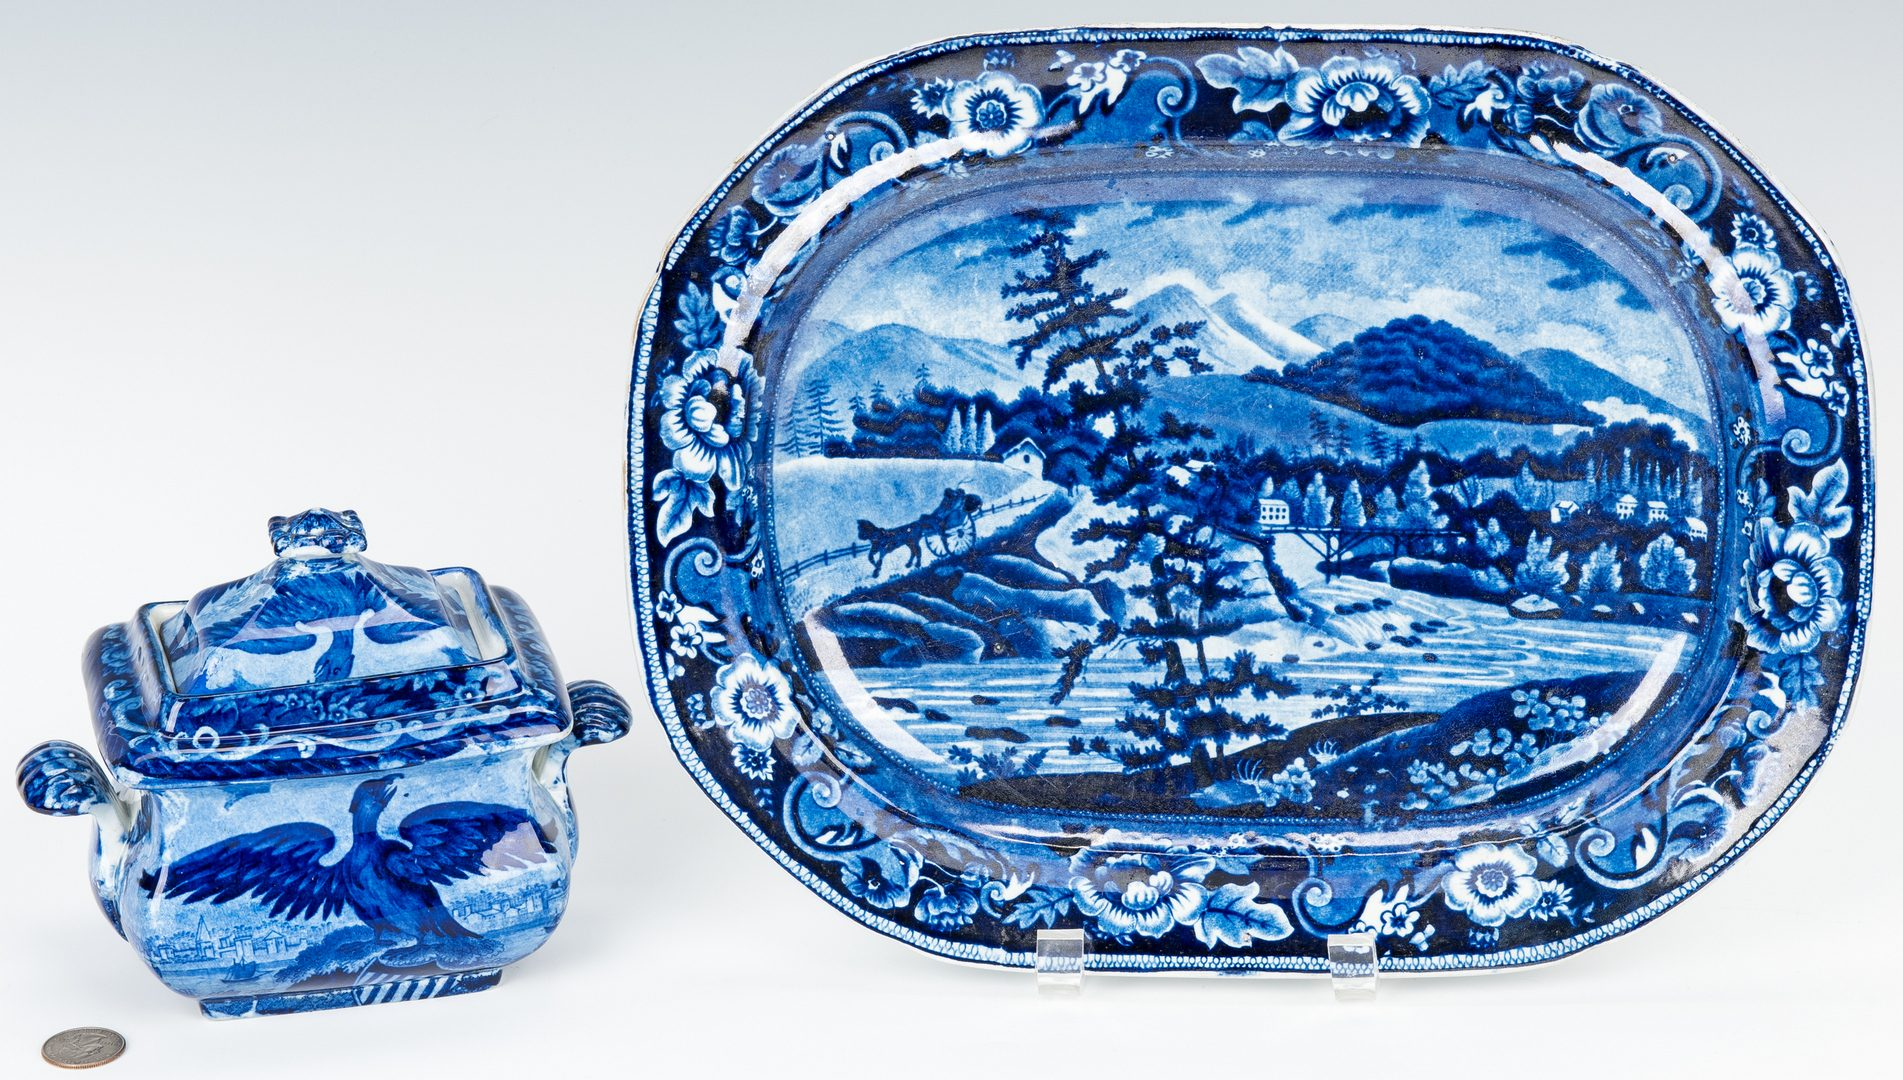 Lot 329: 2 Historical Staffordshire Pieces, Sugar Bowl & Platter